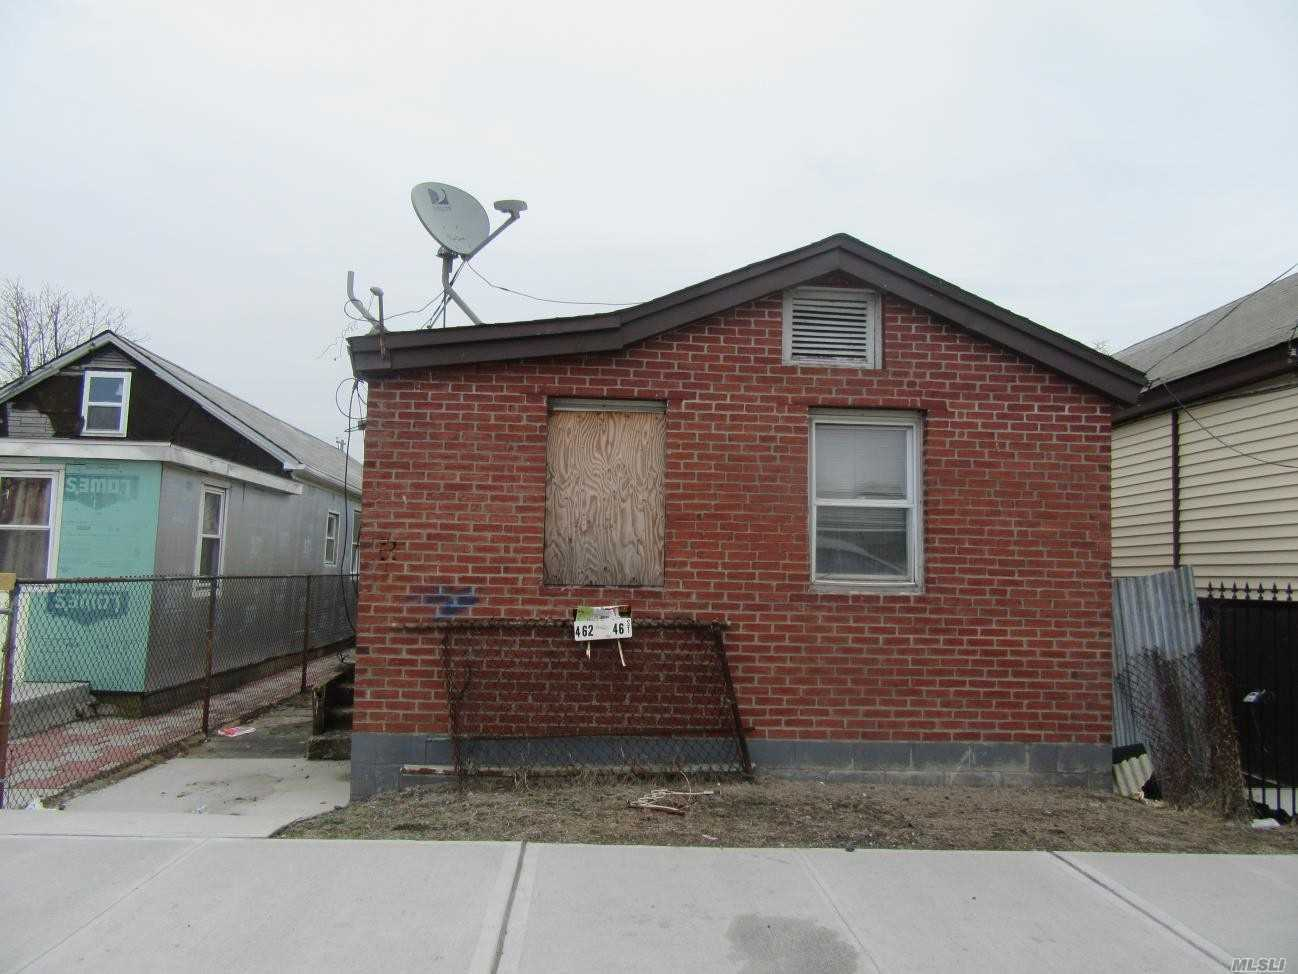 Priced To Sell Asap! Seeking Cash Offer. Can Close Quickly! Act Fast Because This Property Will Be Gone Soon! Perfect Rehab Project For An Investor.